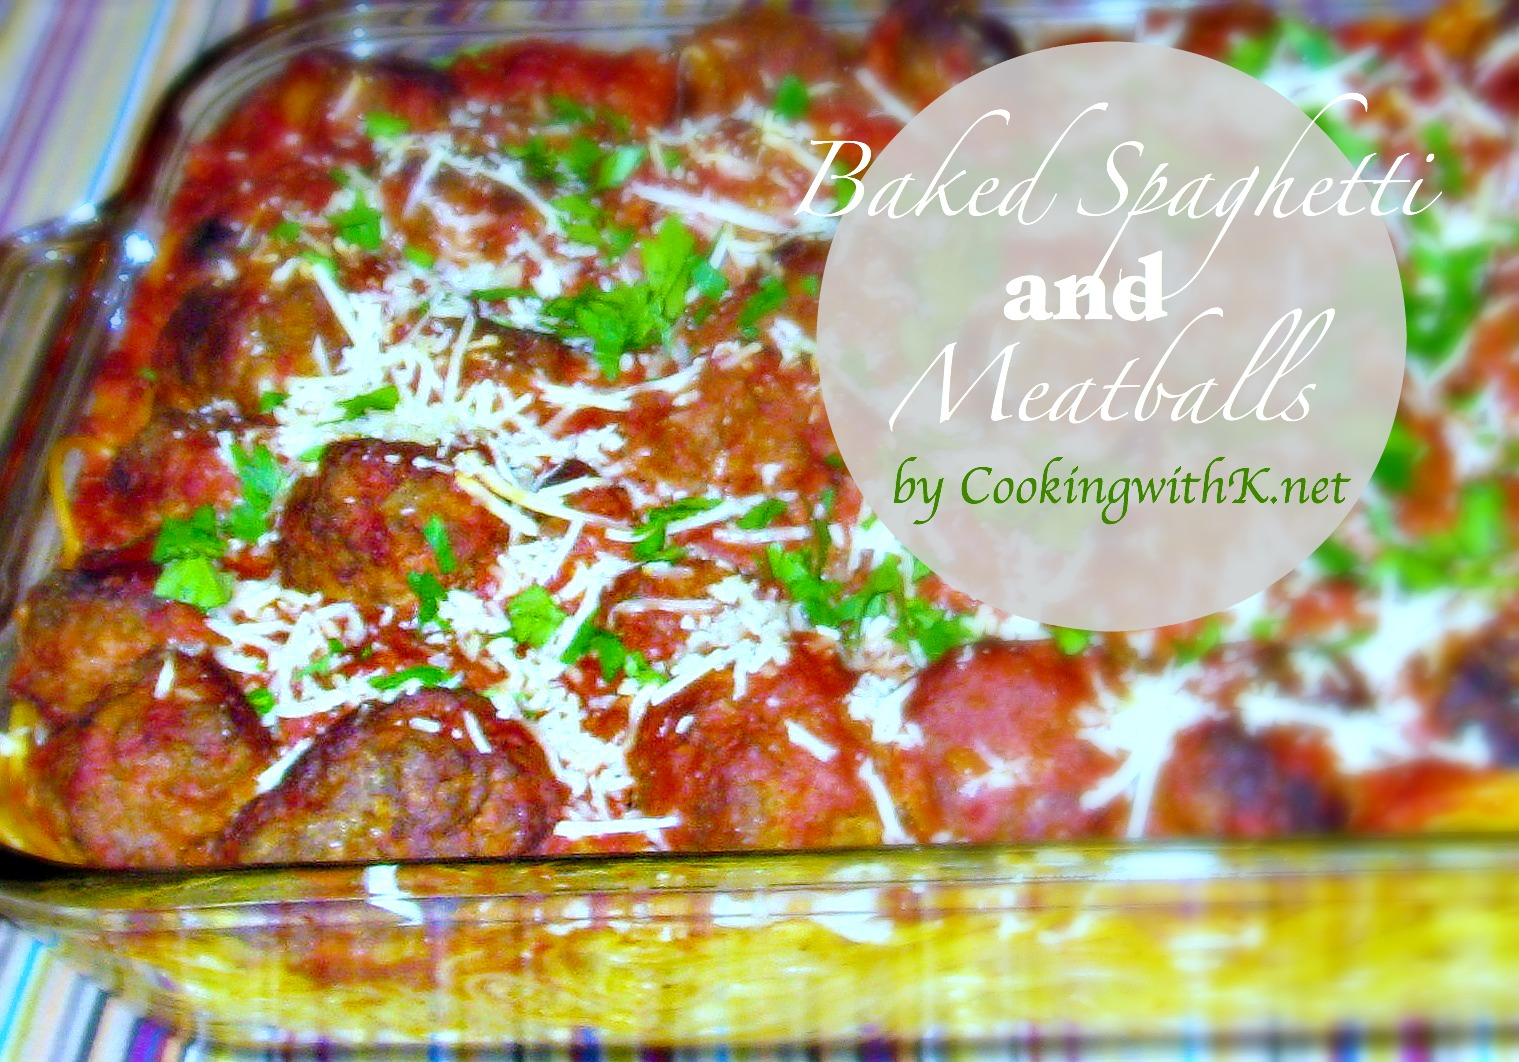 heaping plate of spaghetti and meatballs gives a feeling of comfort ...